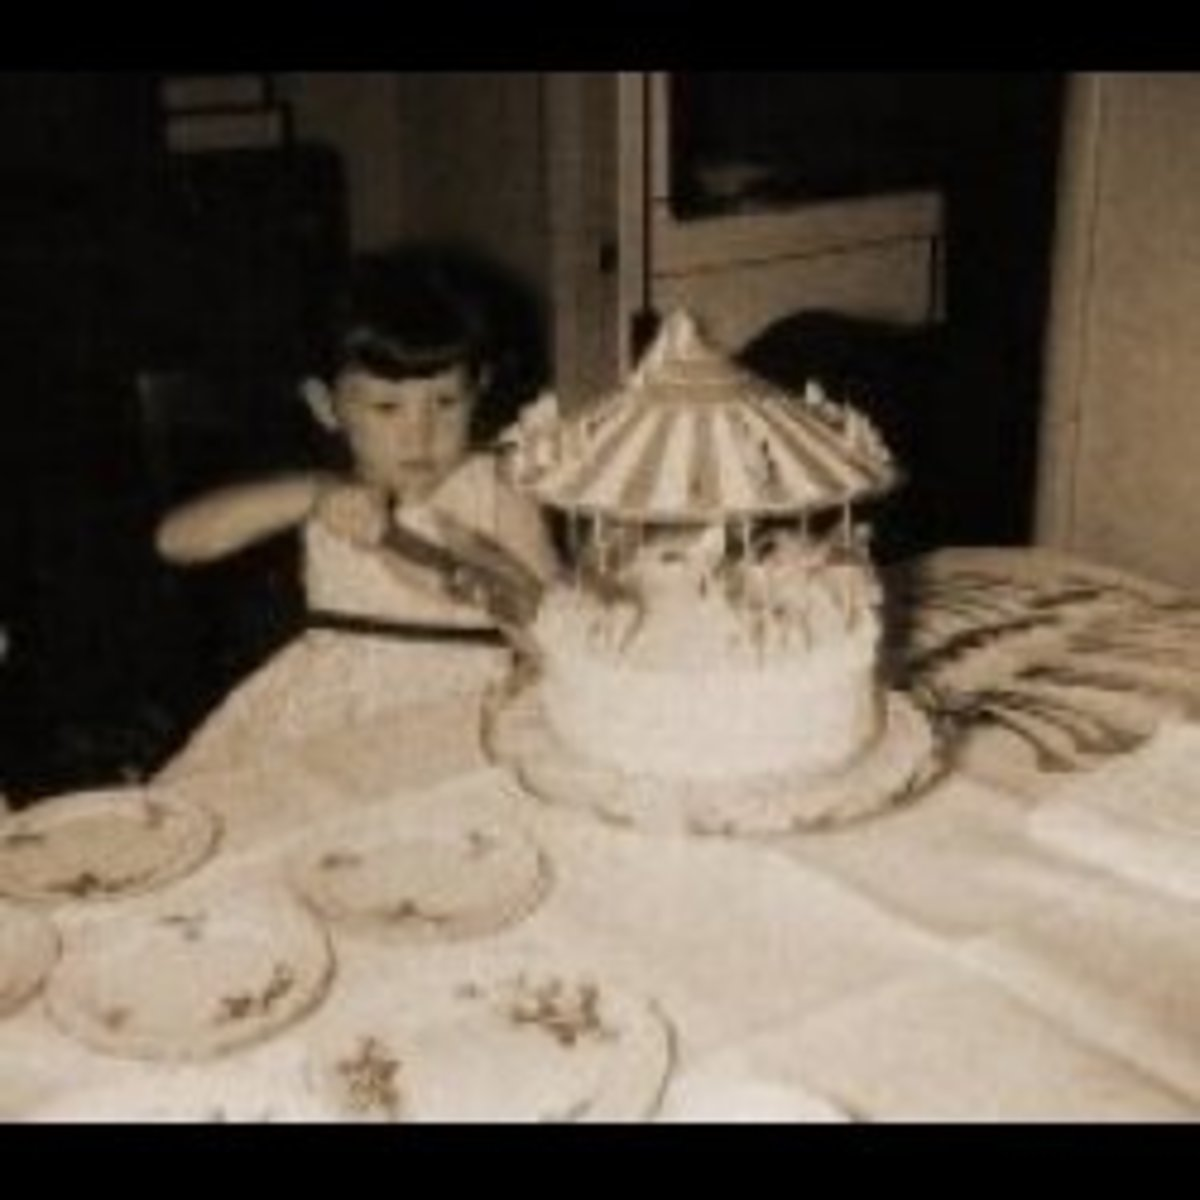 That's me, at the age of four or five. My mom took the picture, or my dad... not sure which one, really. Mom used to buy lovely birthday cakes from the bakery. This one was a carousel with animal figurines on it.